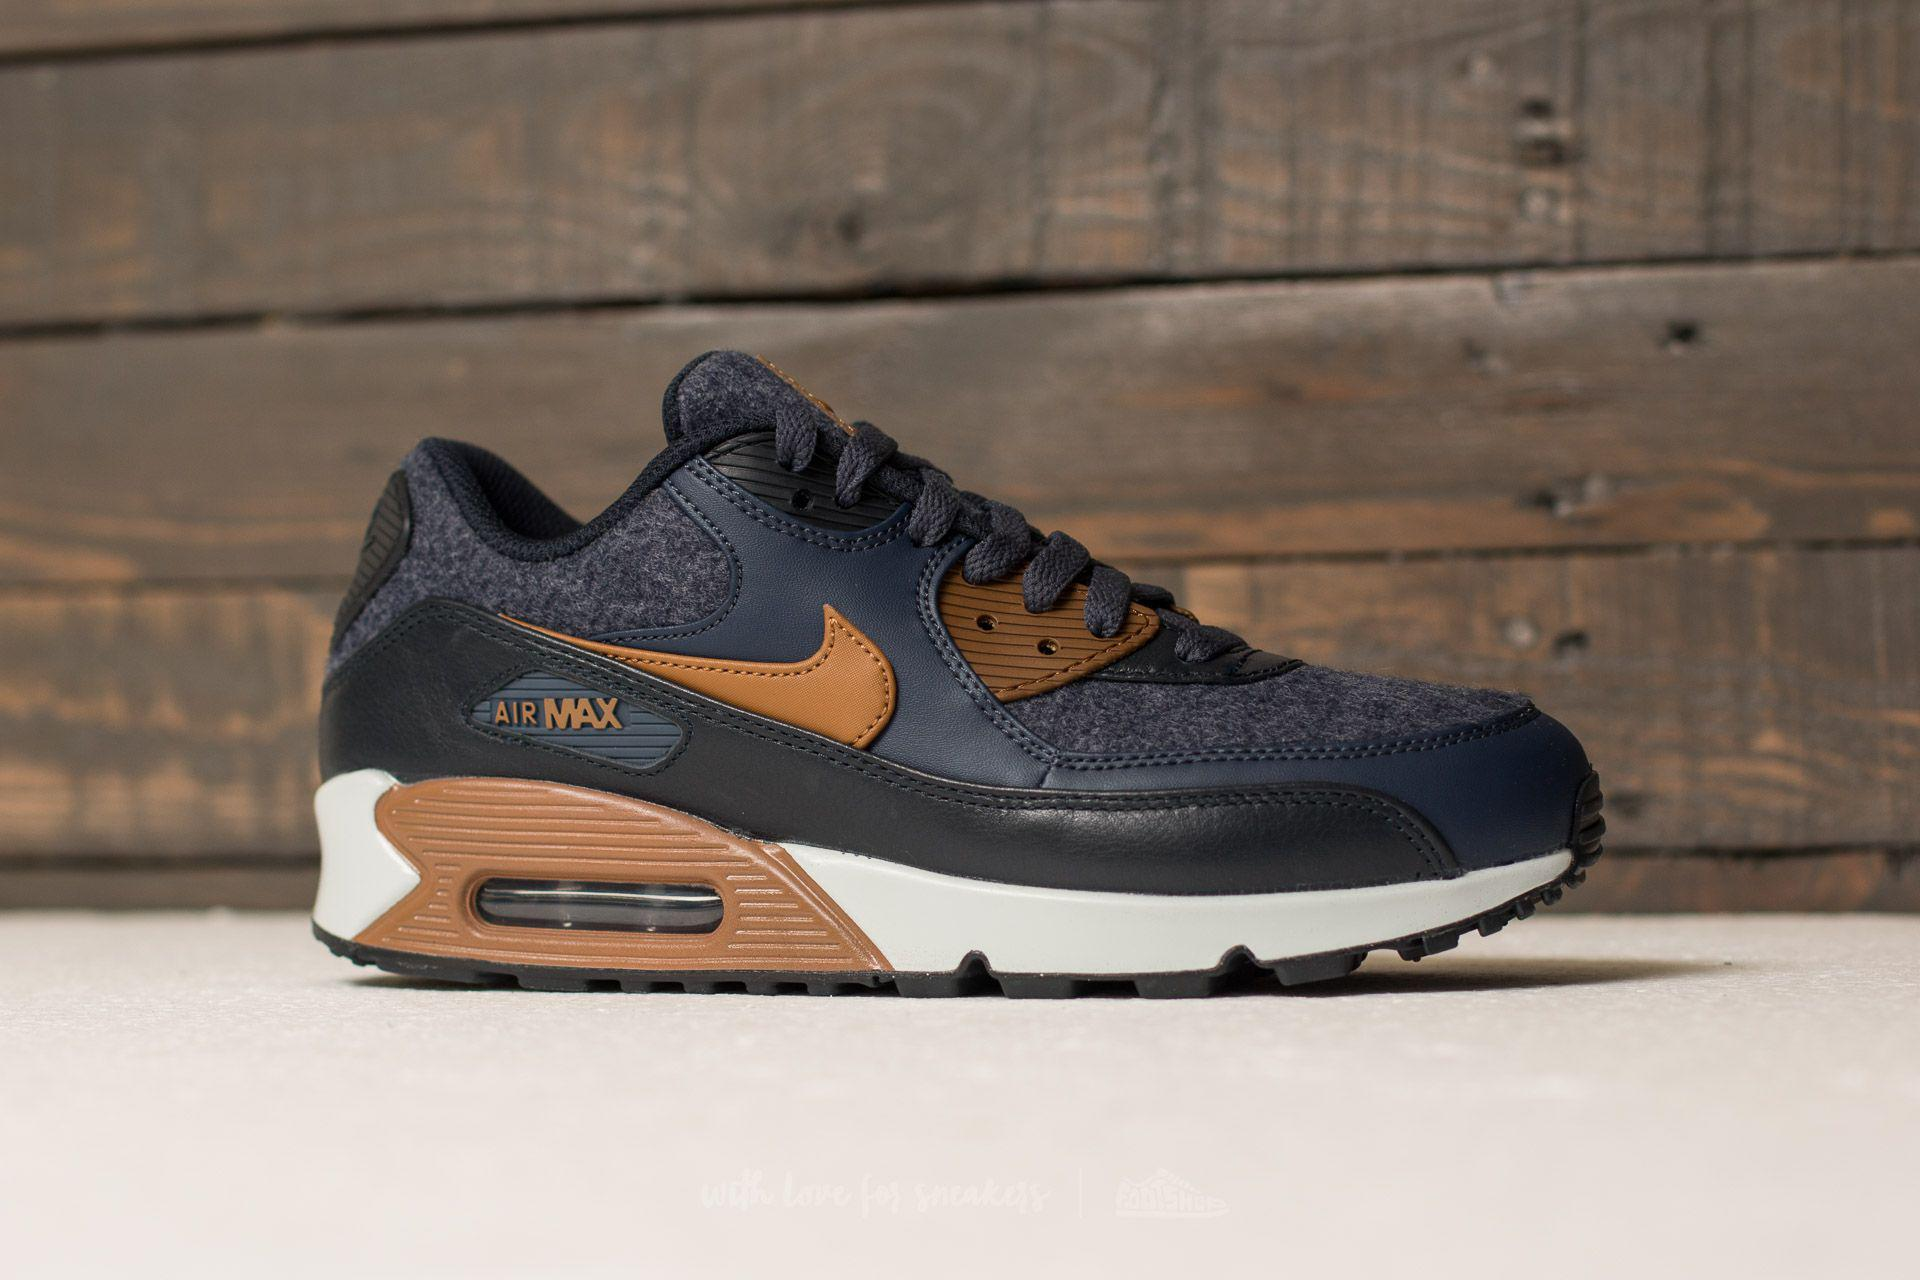 size 40 d1b51 1d7cb buy nike air max 90 ad94c 07059  get gallery. previously sold at footshop  mens air max 90 sneakers 067b9 fa3b3